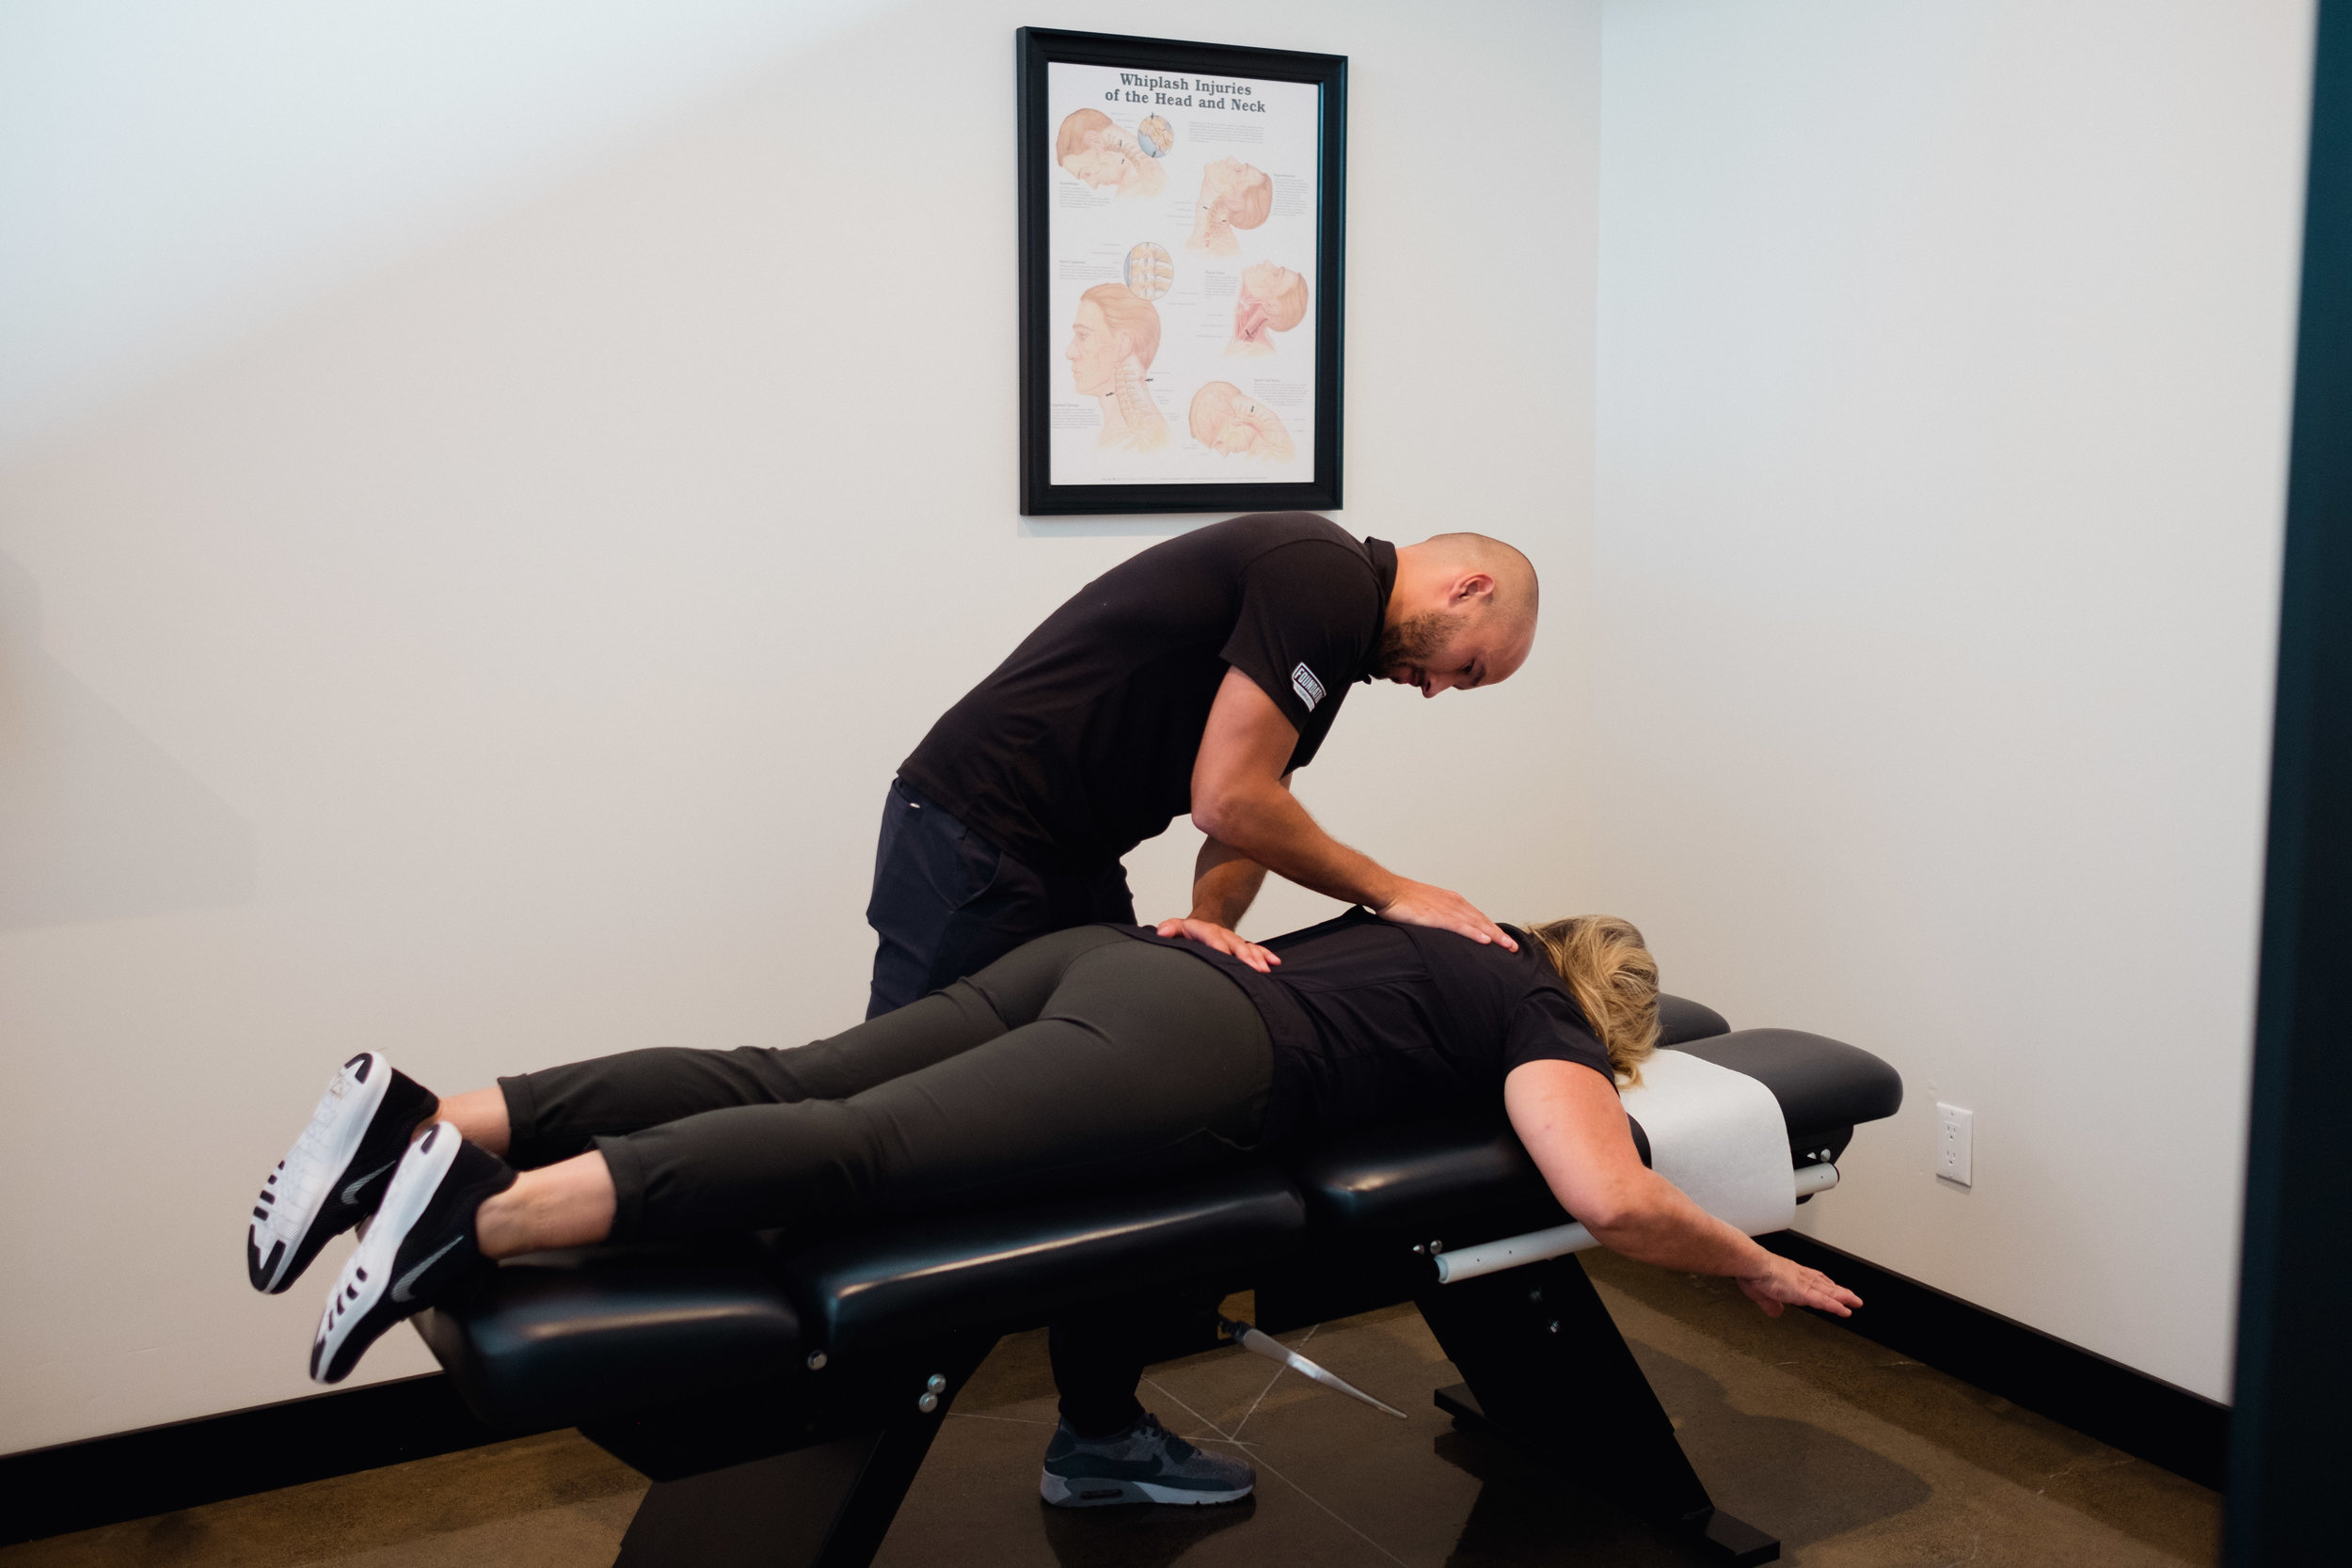 Chiropractic adjustments in our office are safe, gentle and effective.